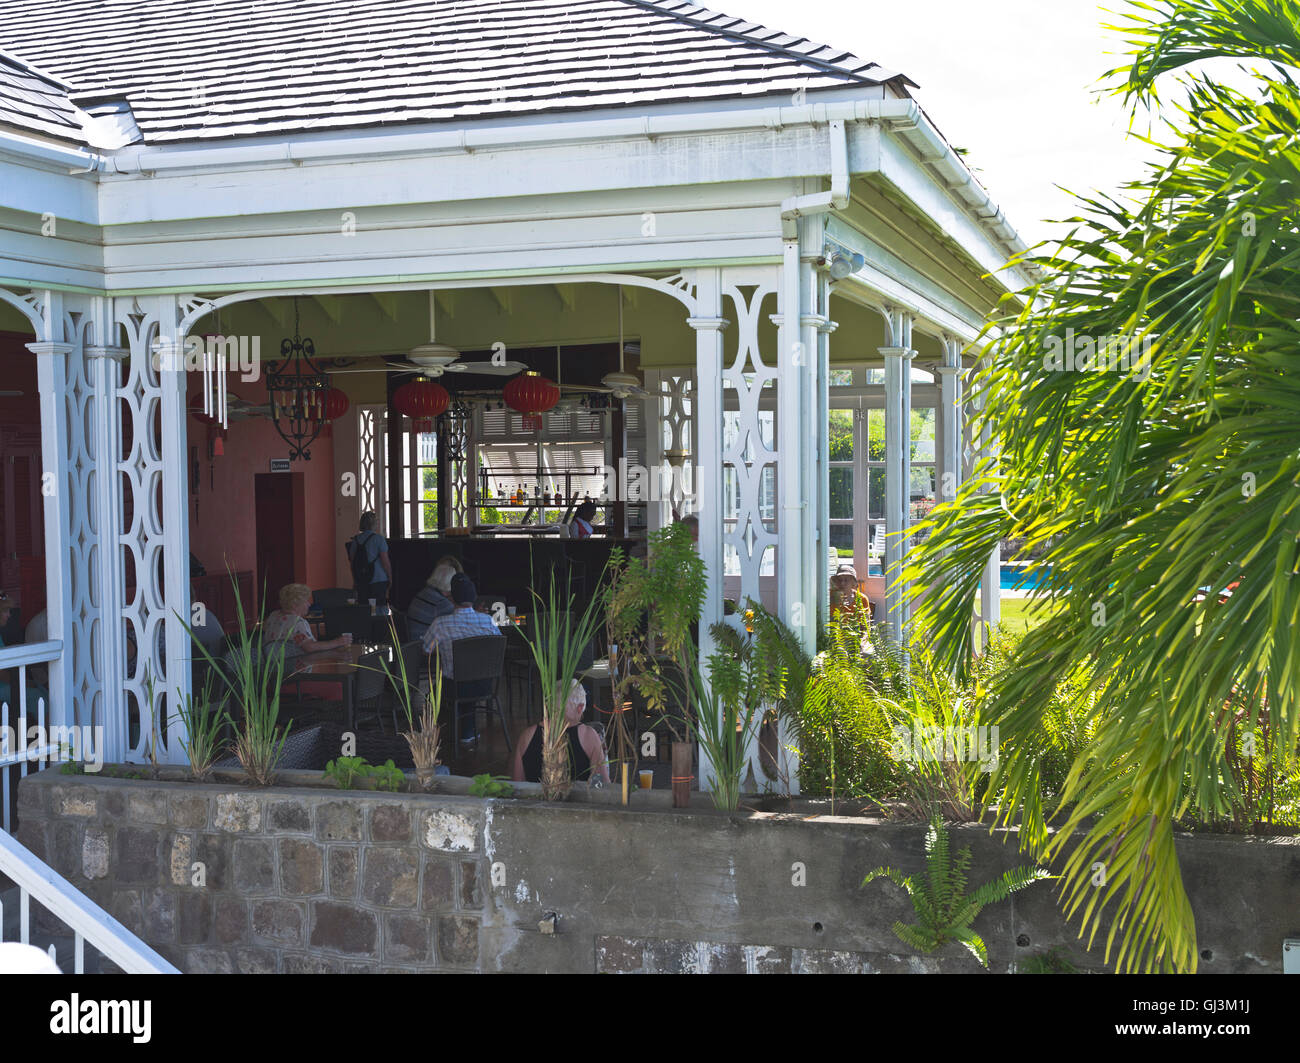 Dh Fairview Great House ST KITTS CARIBBEAN Old Colonial Tourist Bar